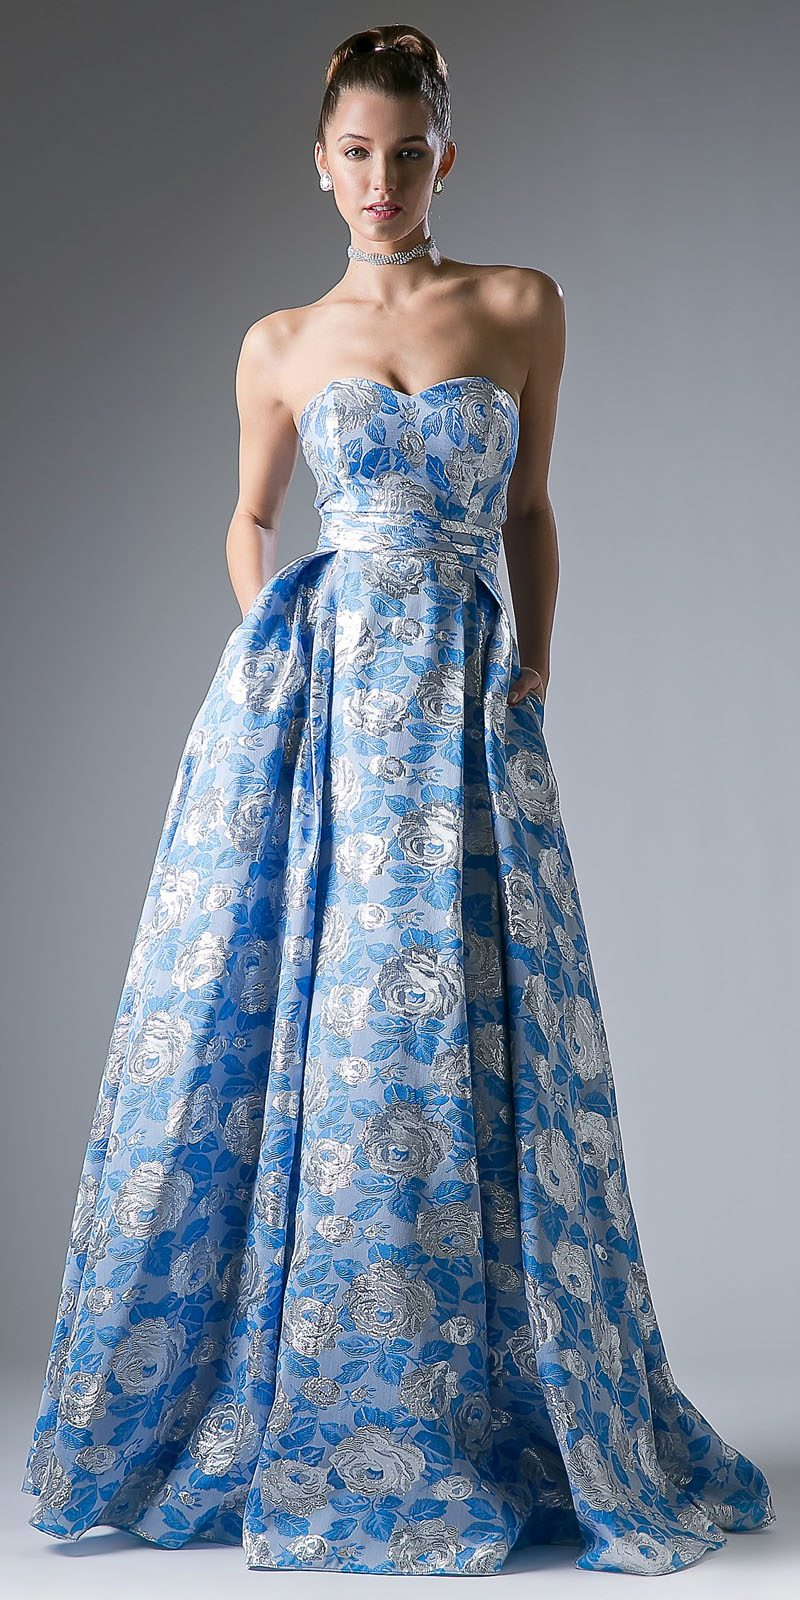 3fb216974b Blue Floral Print Long Prom Dress Sweetheart Neckline Strapless. Tap to  expand